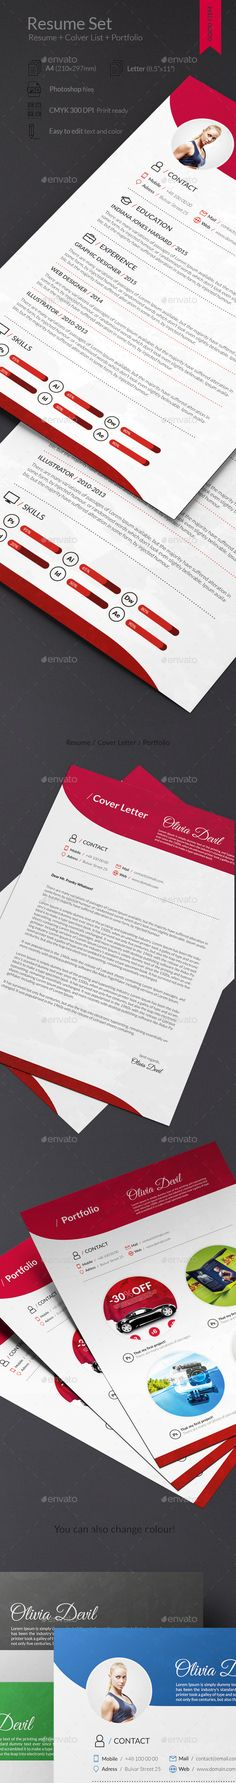 Clean \ Modern Resume (Vol-2) Modern resume, Cleaning and Modern - resumes by design